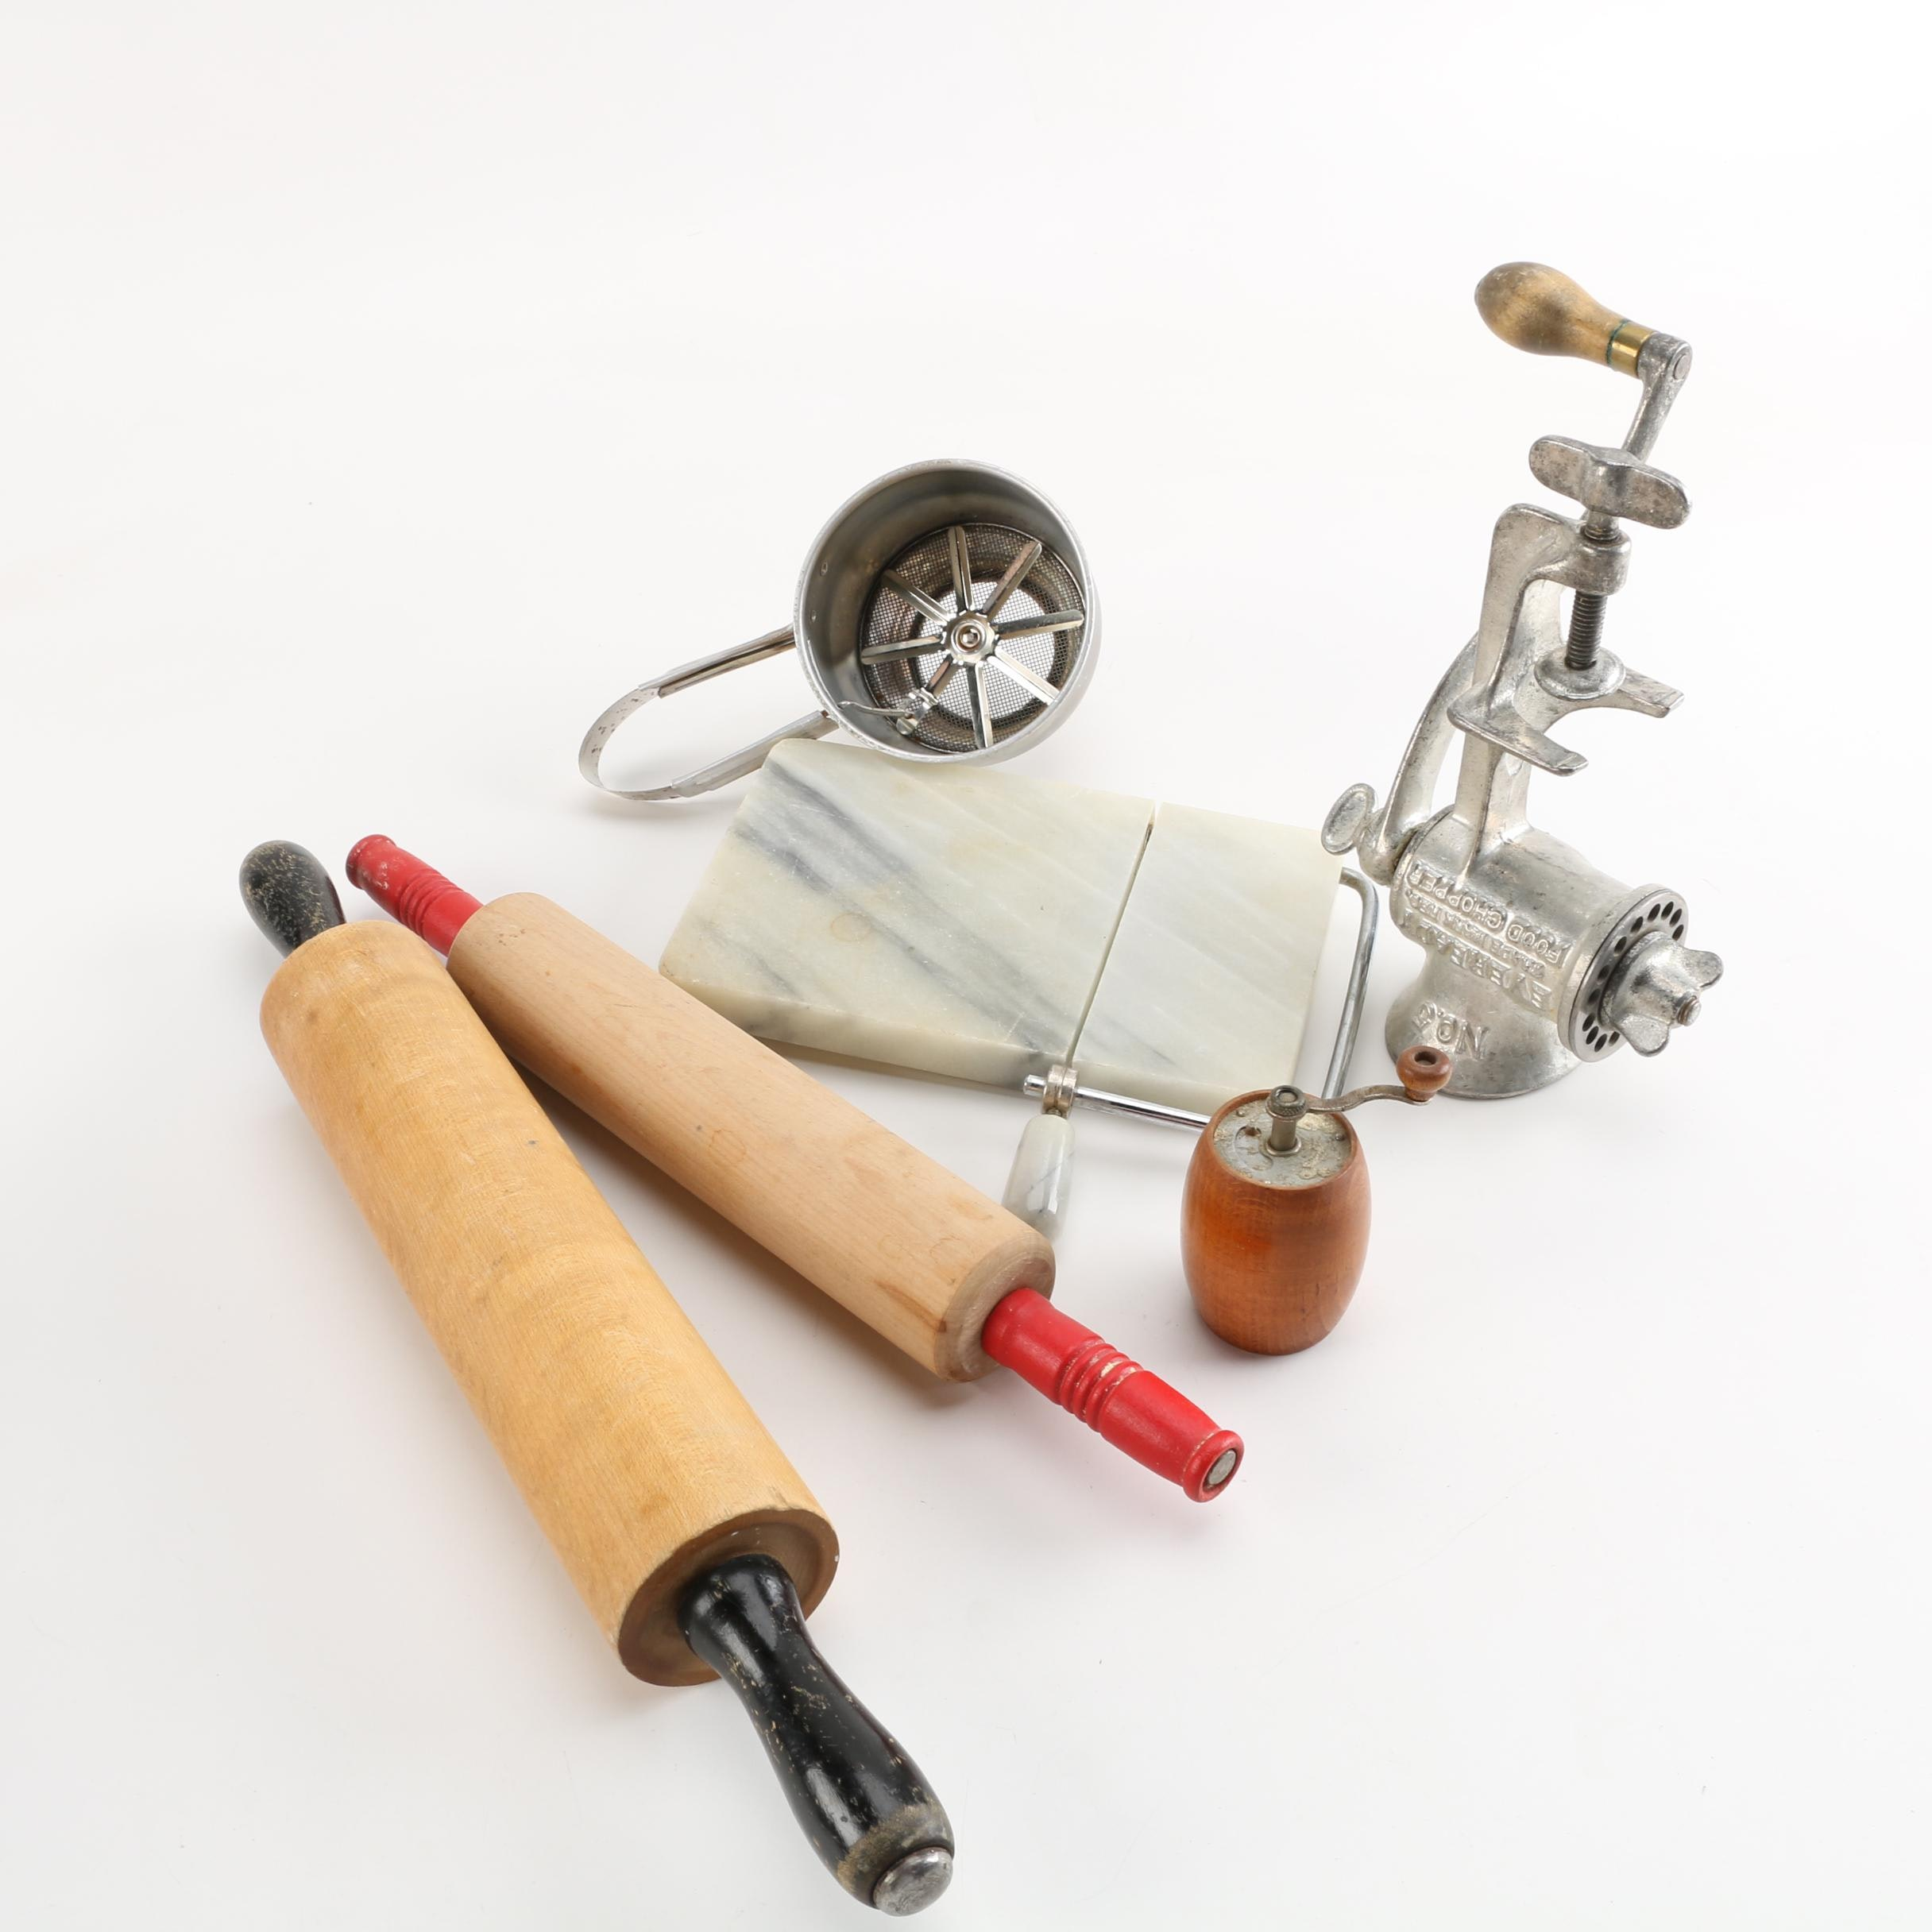 Vintage Kitchen Gadgets And Tools ...